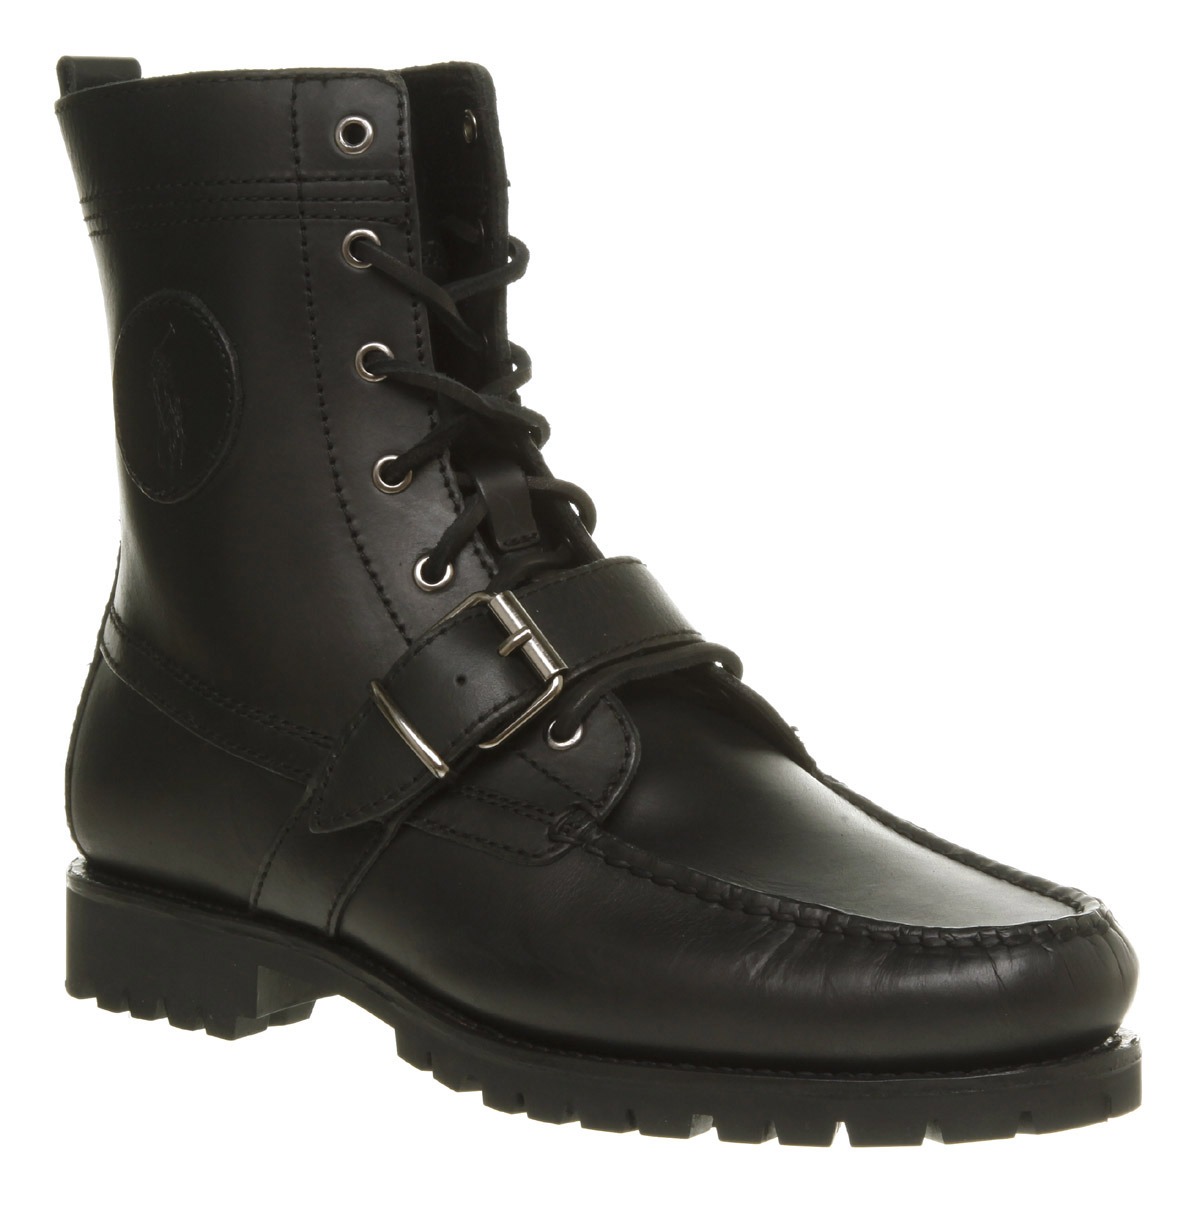 Mens-Ralph-Lauren-Ranger-Lace-Up-Black-Leather-Boots